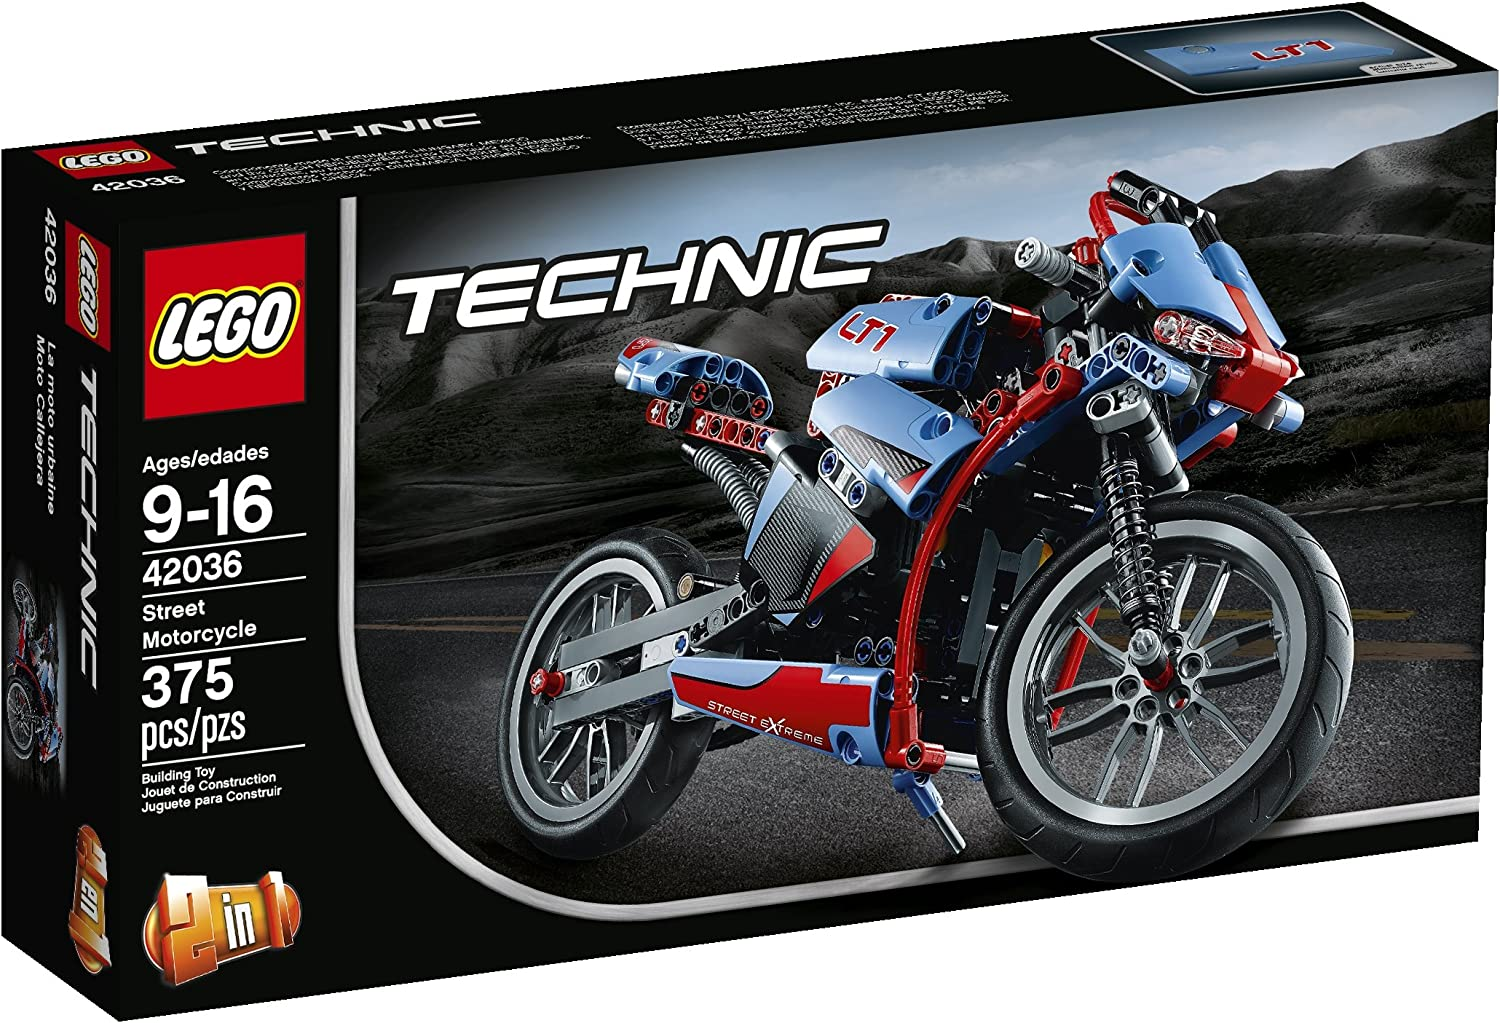 Top 7 Best LEGO Motorcycle Sets Reviews in 2020 1